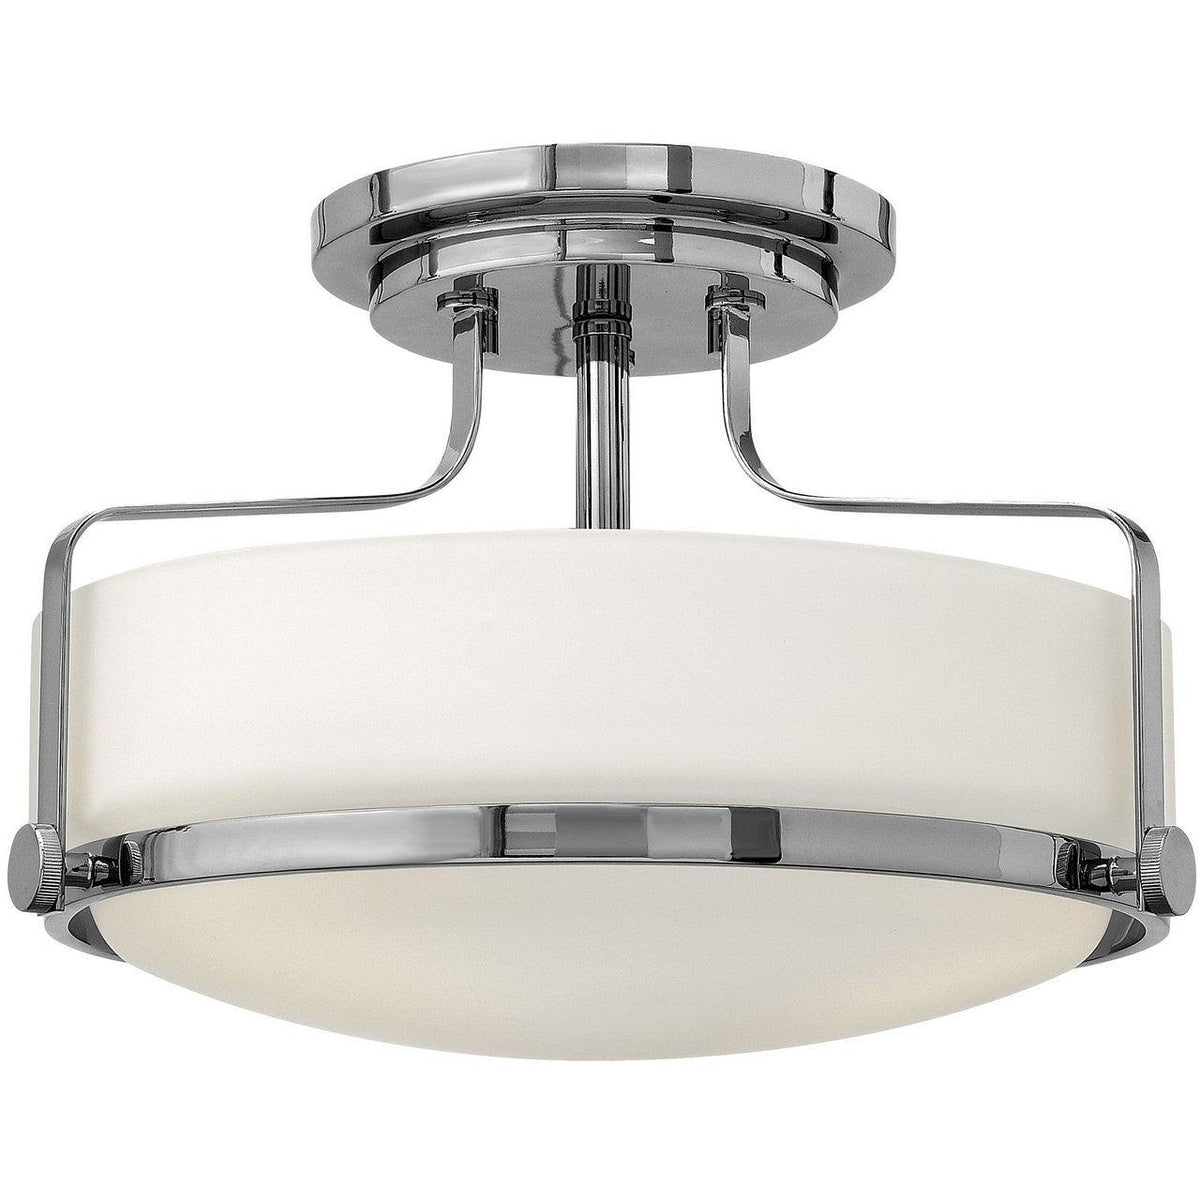 Hinkley Canada - 3641CM - Three Light Semi-Flush Mount - Harper - Chrome